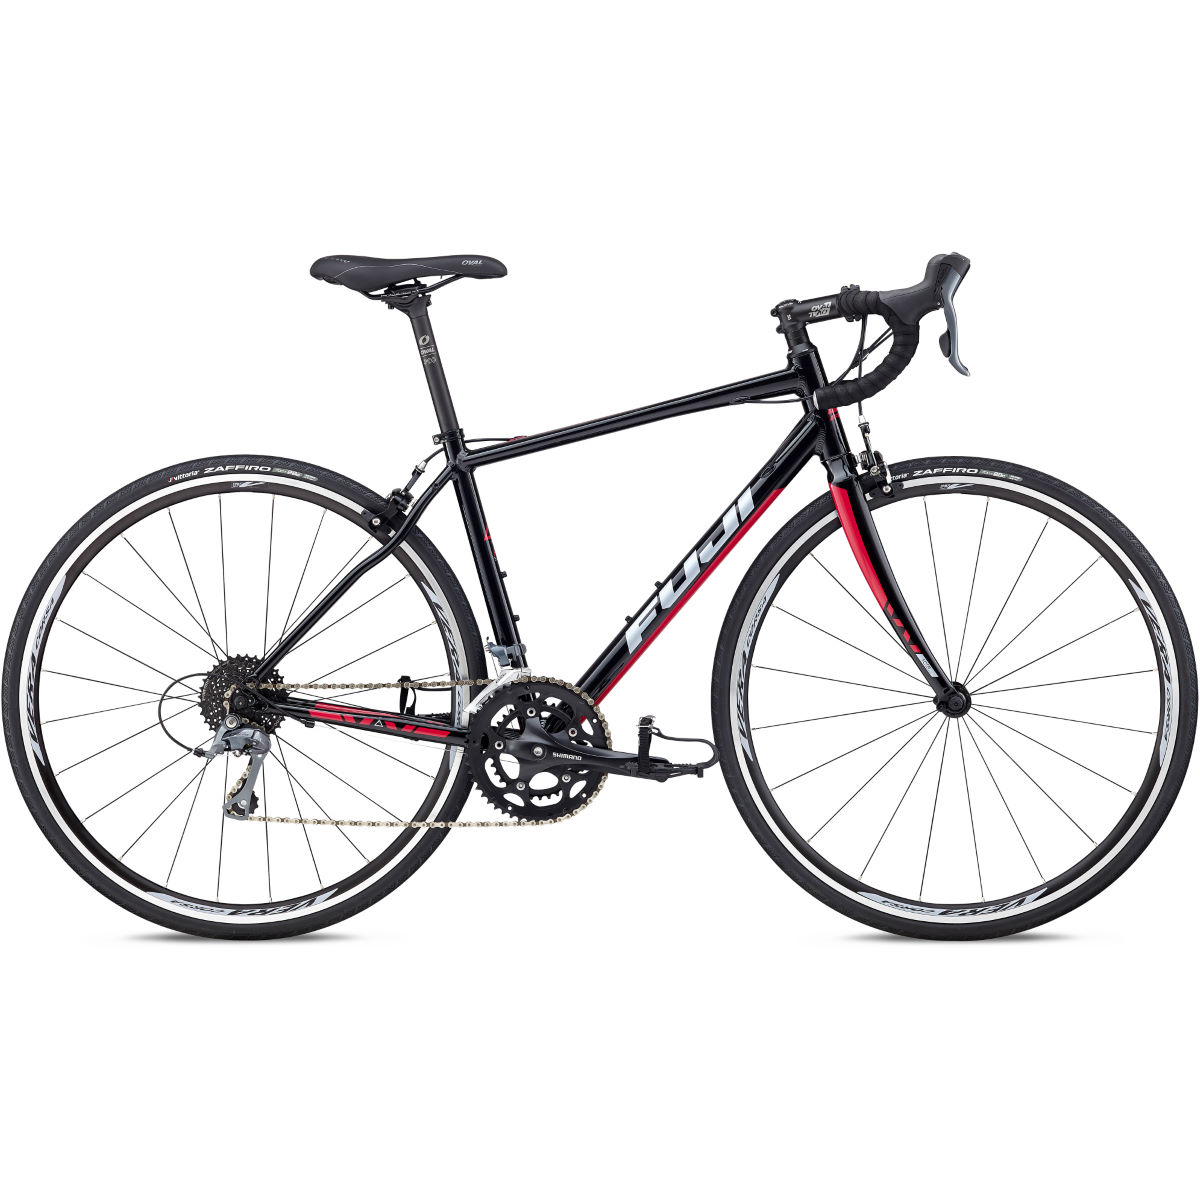 Vélo de route Fuji Finest 2.3 - 47cm Stock Bike Black/Raspberry